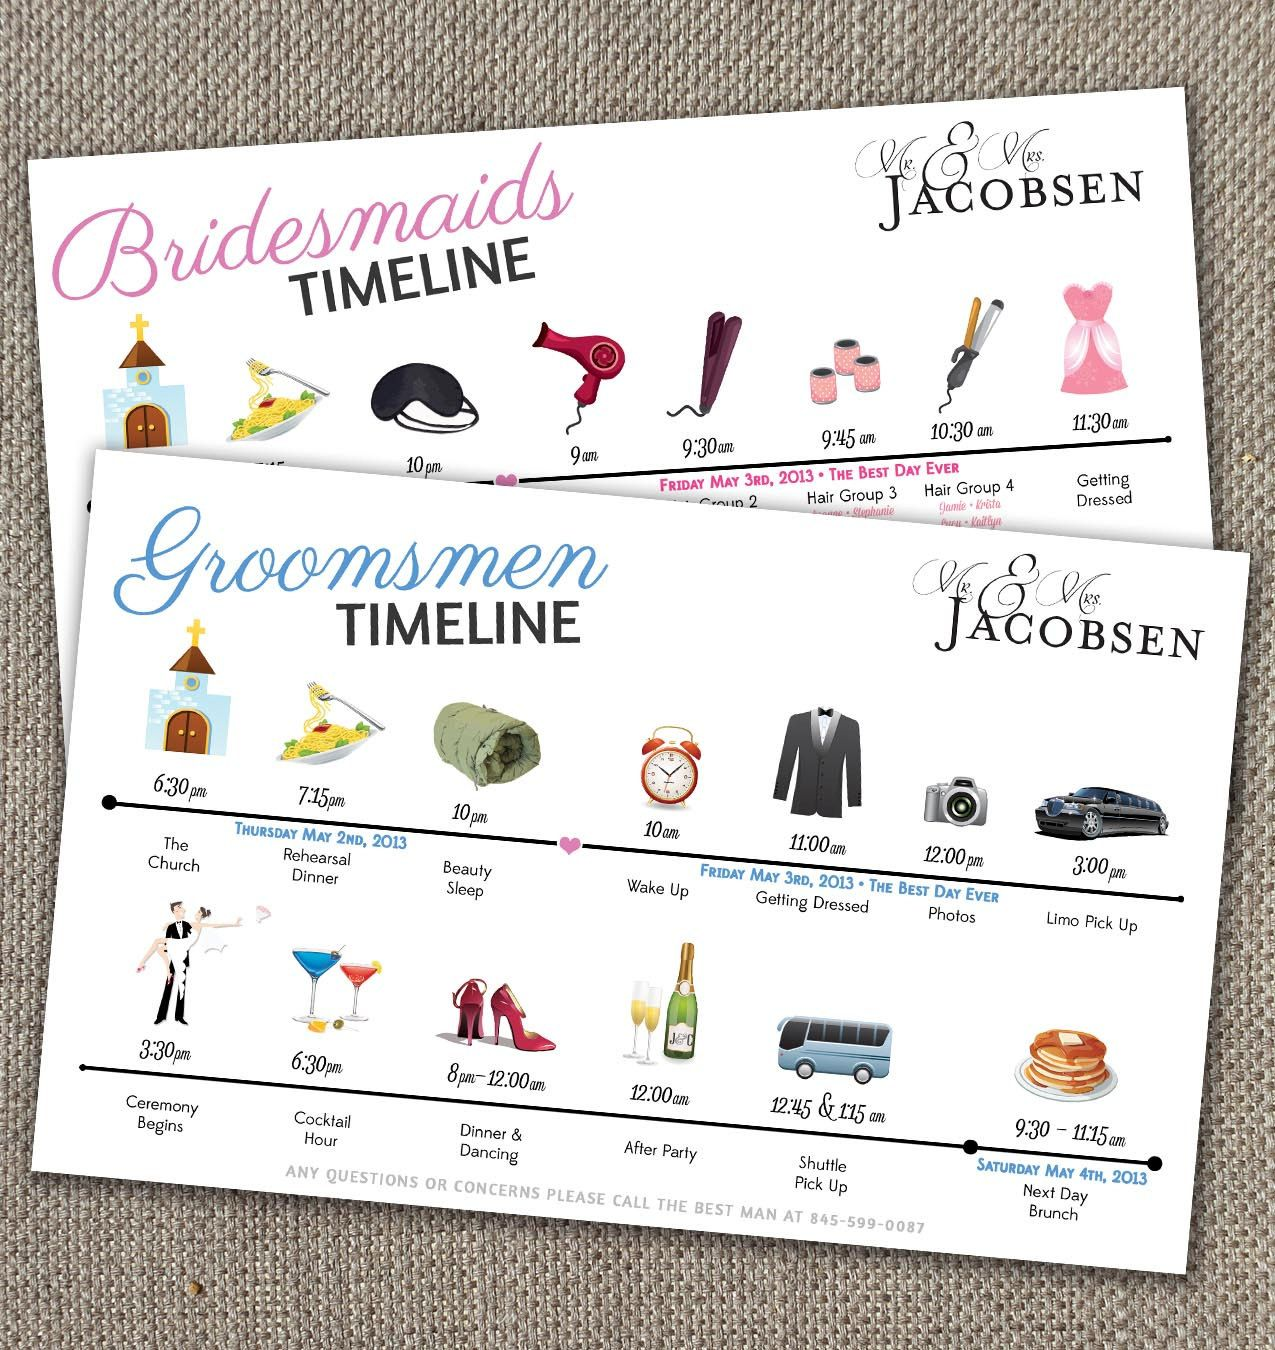 Bridesmaids & Groomsmen Big Day Time Line By